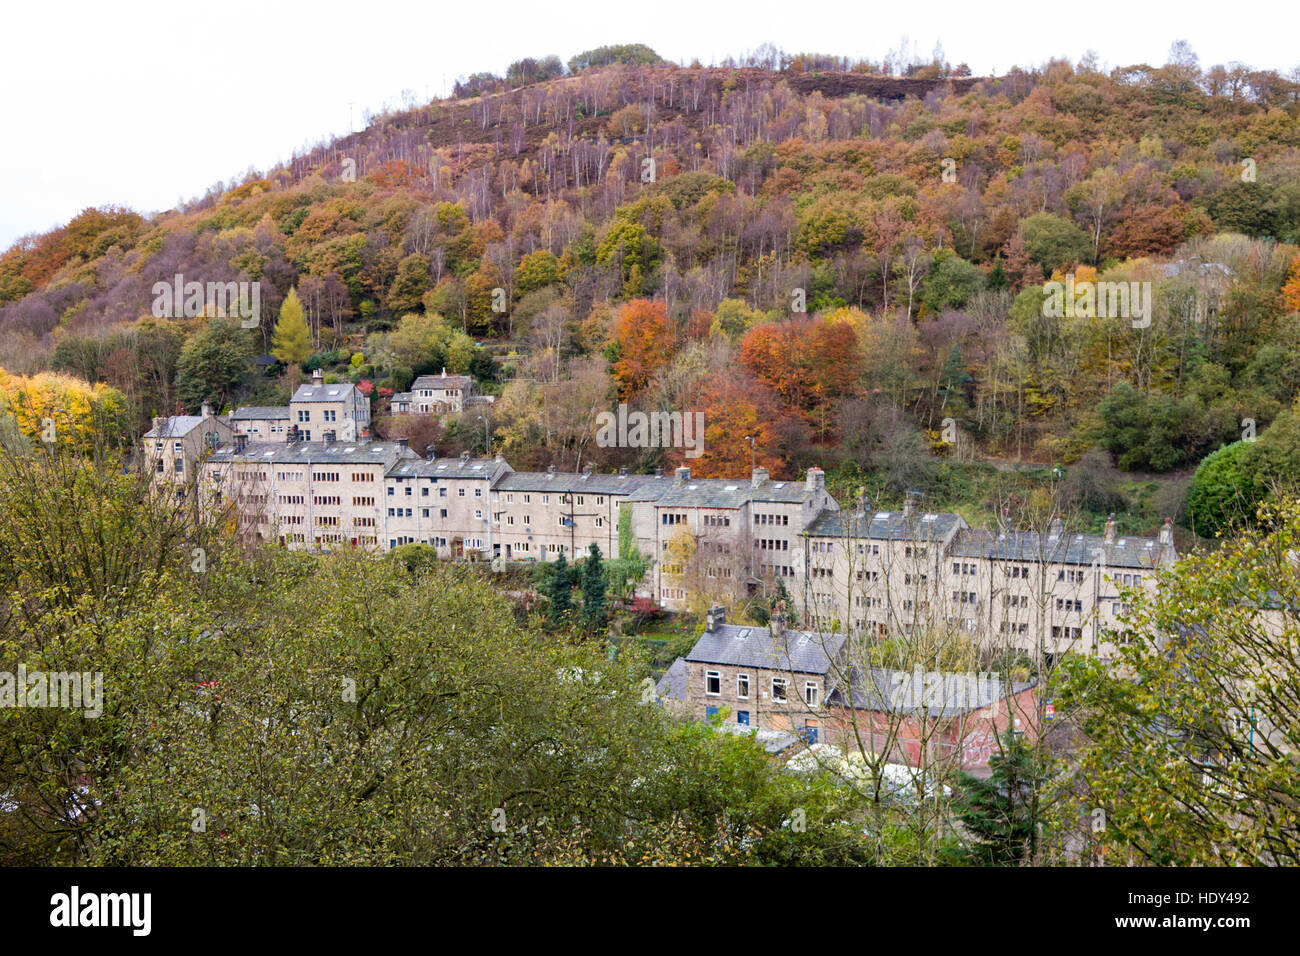 View of a row of house in the Yorkshire mill town of Hebden Bridge, Calderdale, West Yorkshire, England UK - Stock Image